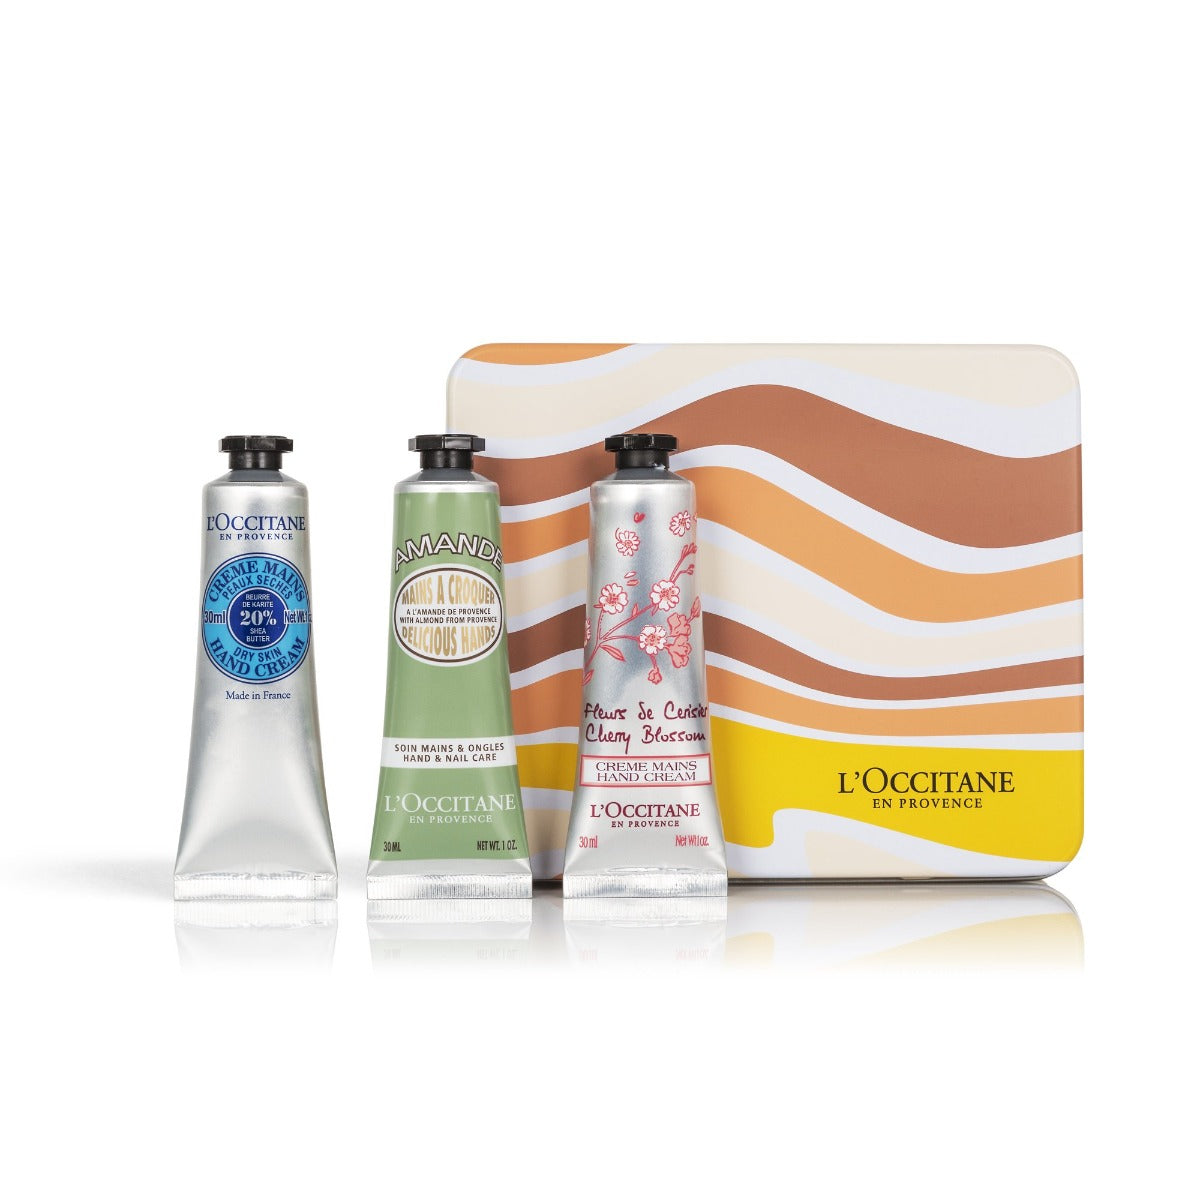 L'Occitane 30ml Hand Cream Trio